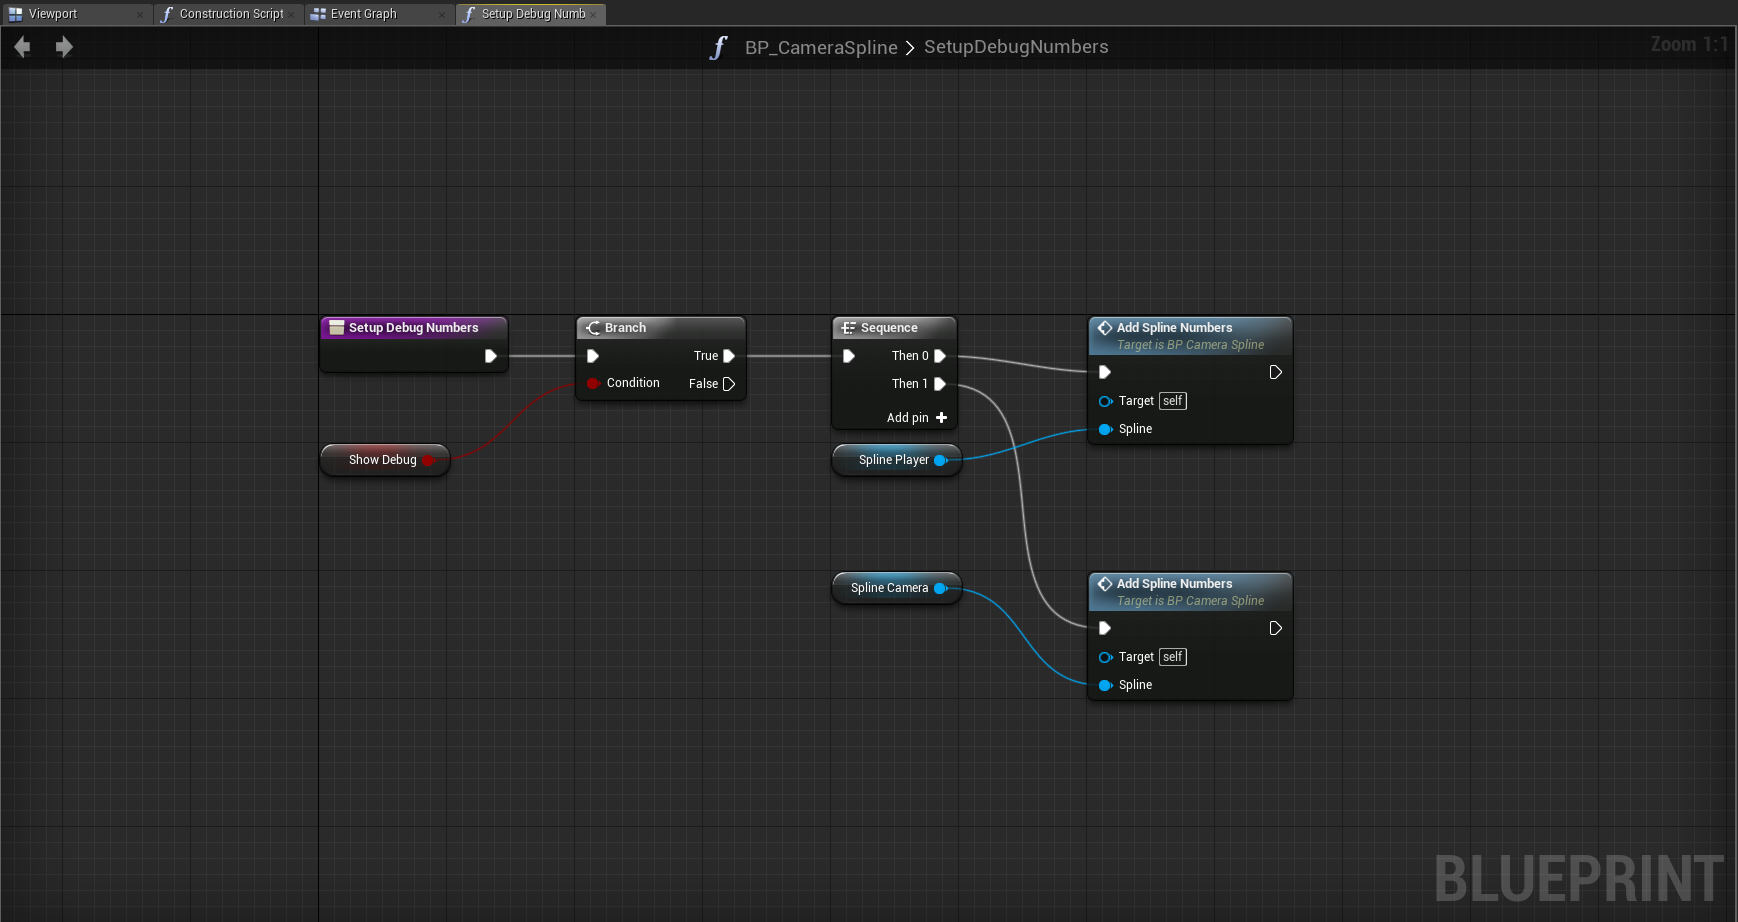 Unreal engine 4 lets make a camera spline system greg mladucky after this we will create a new function called add spline numbers and create a spline component input for it we are going to reuse this function twice malvernweather Gallery